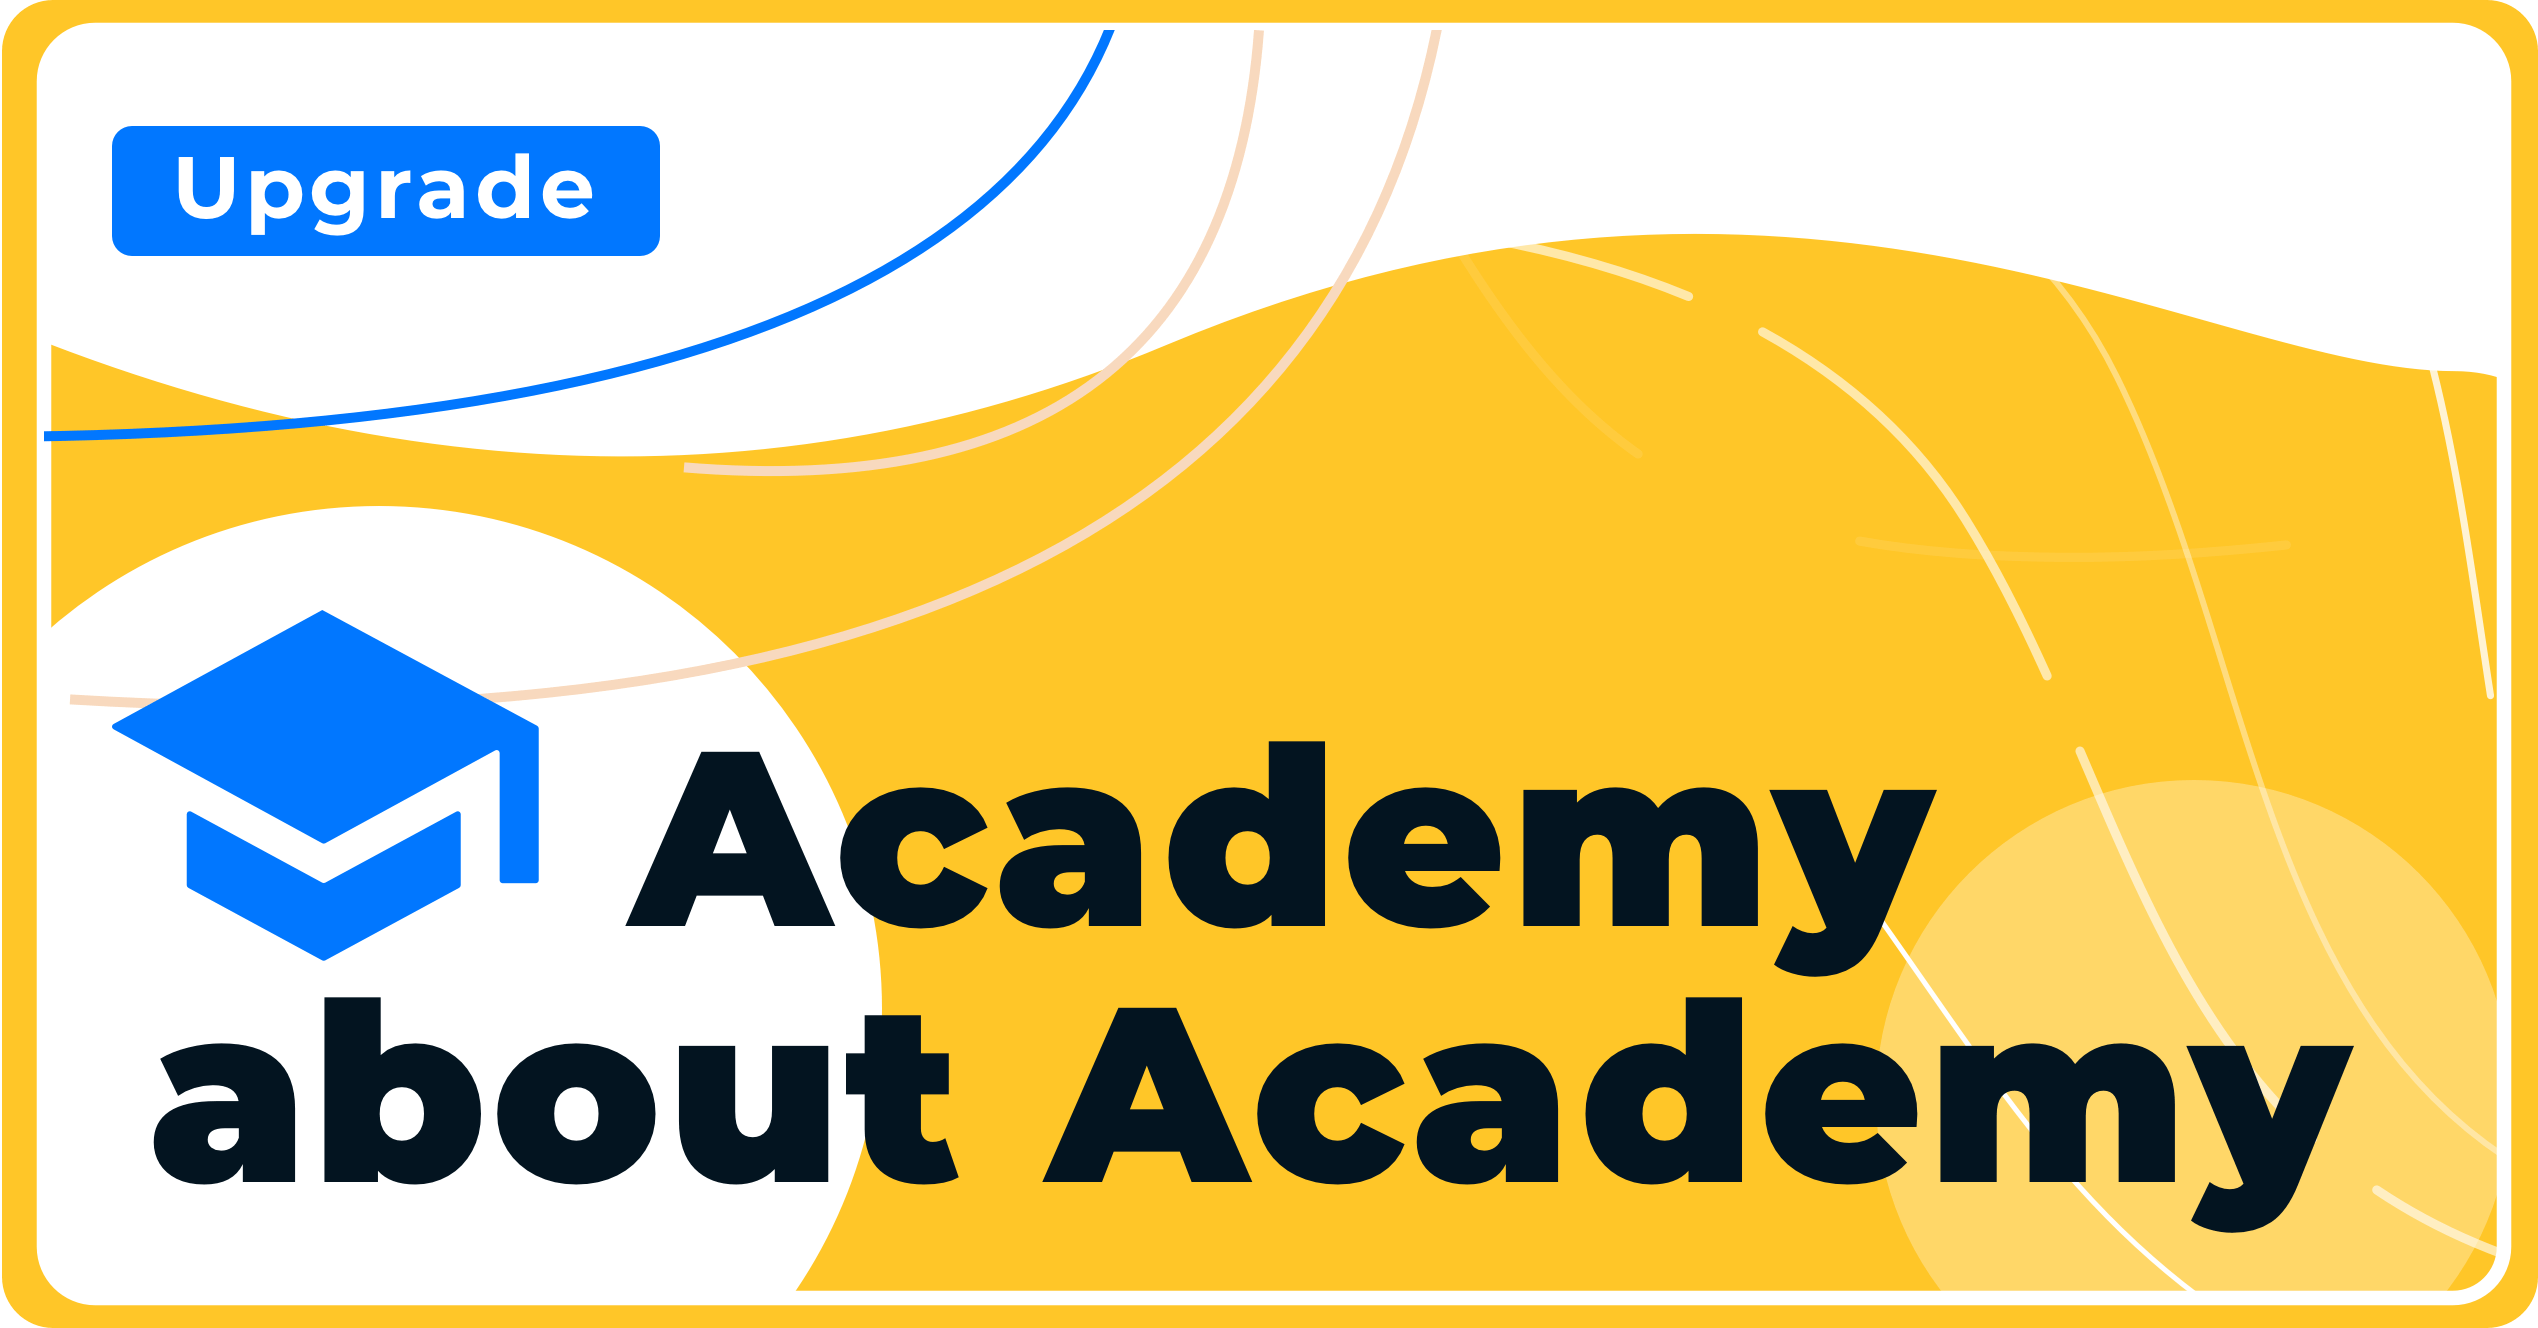 Academy about Academy